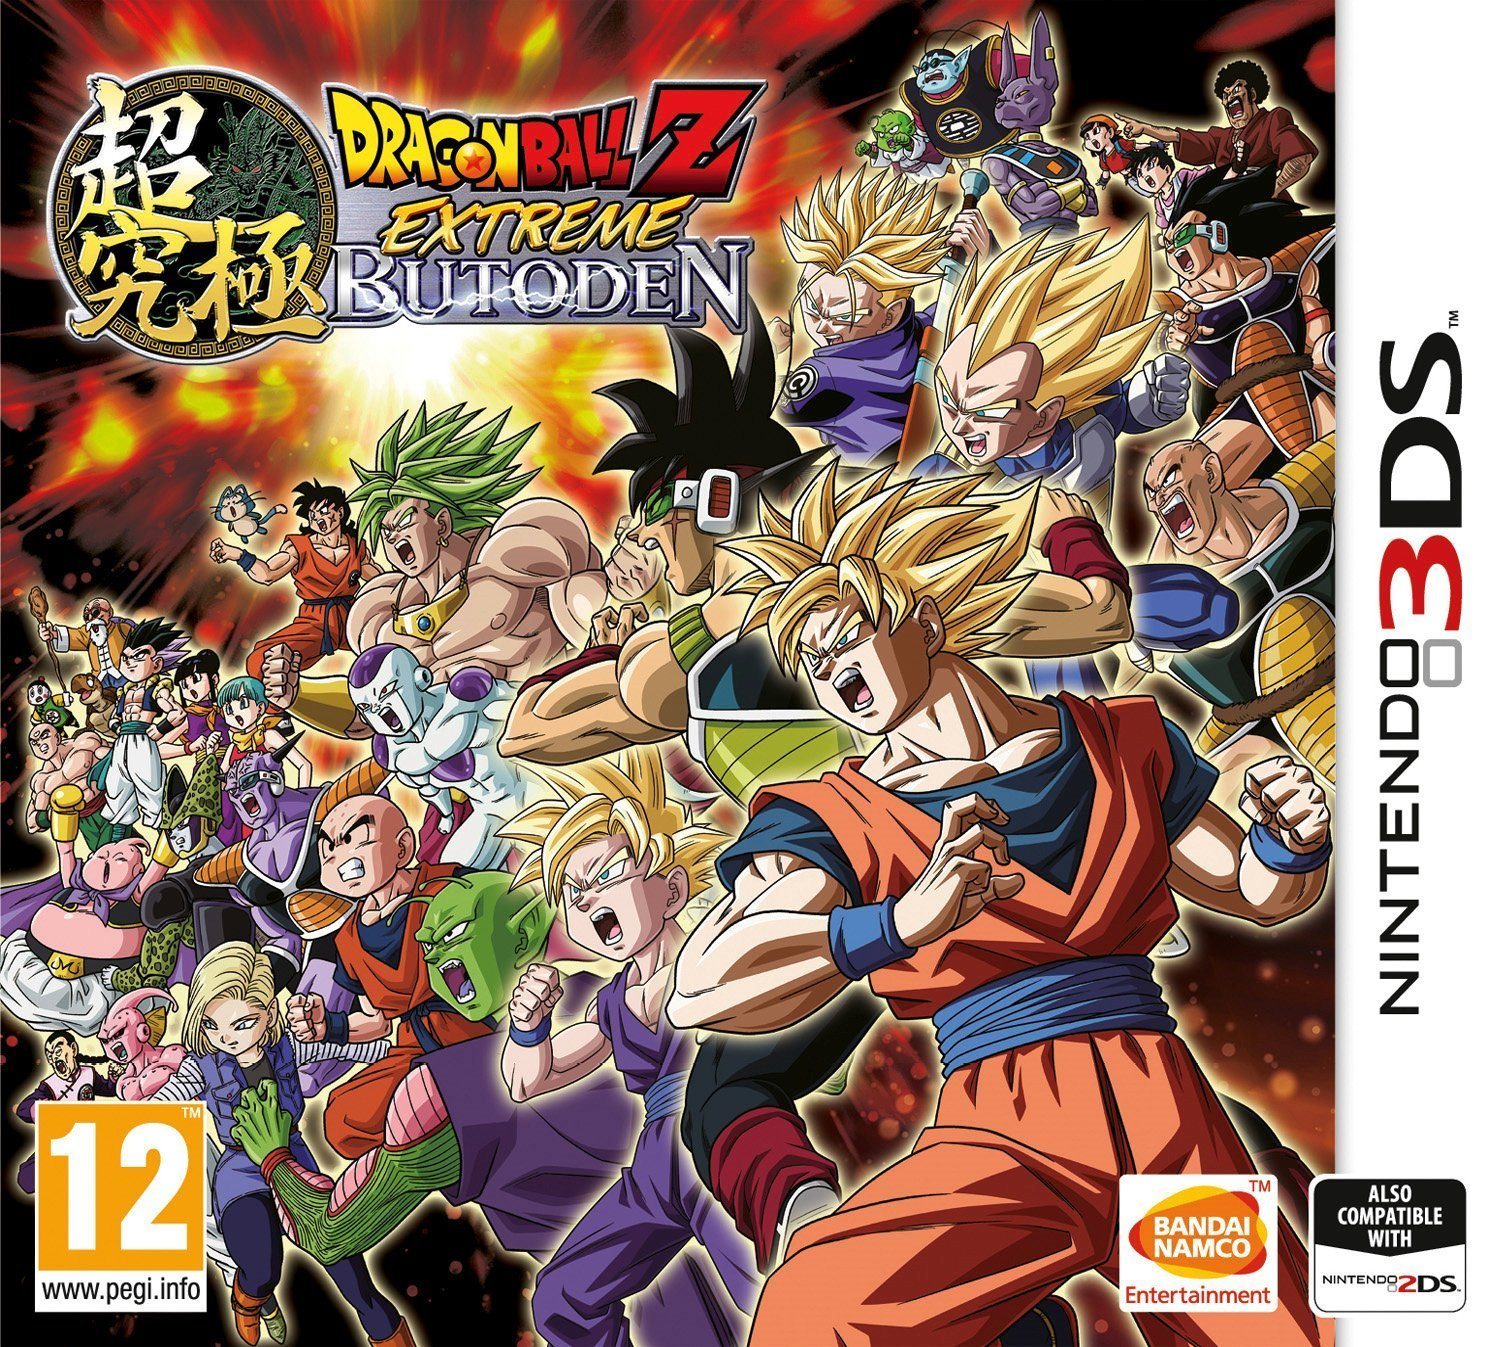 [MANGA/ANIME] Dragon Ball Z 14793910